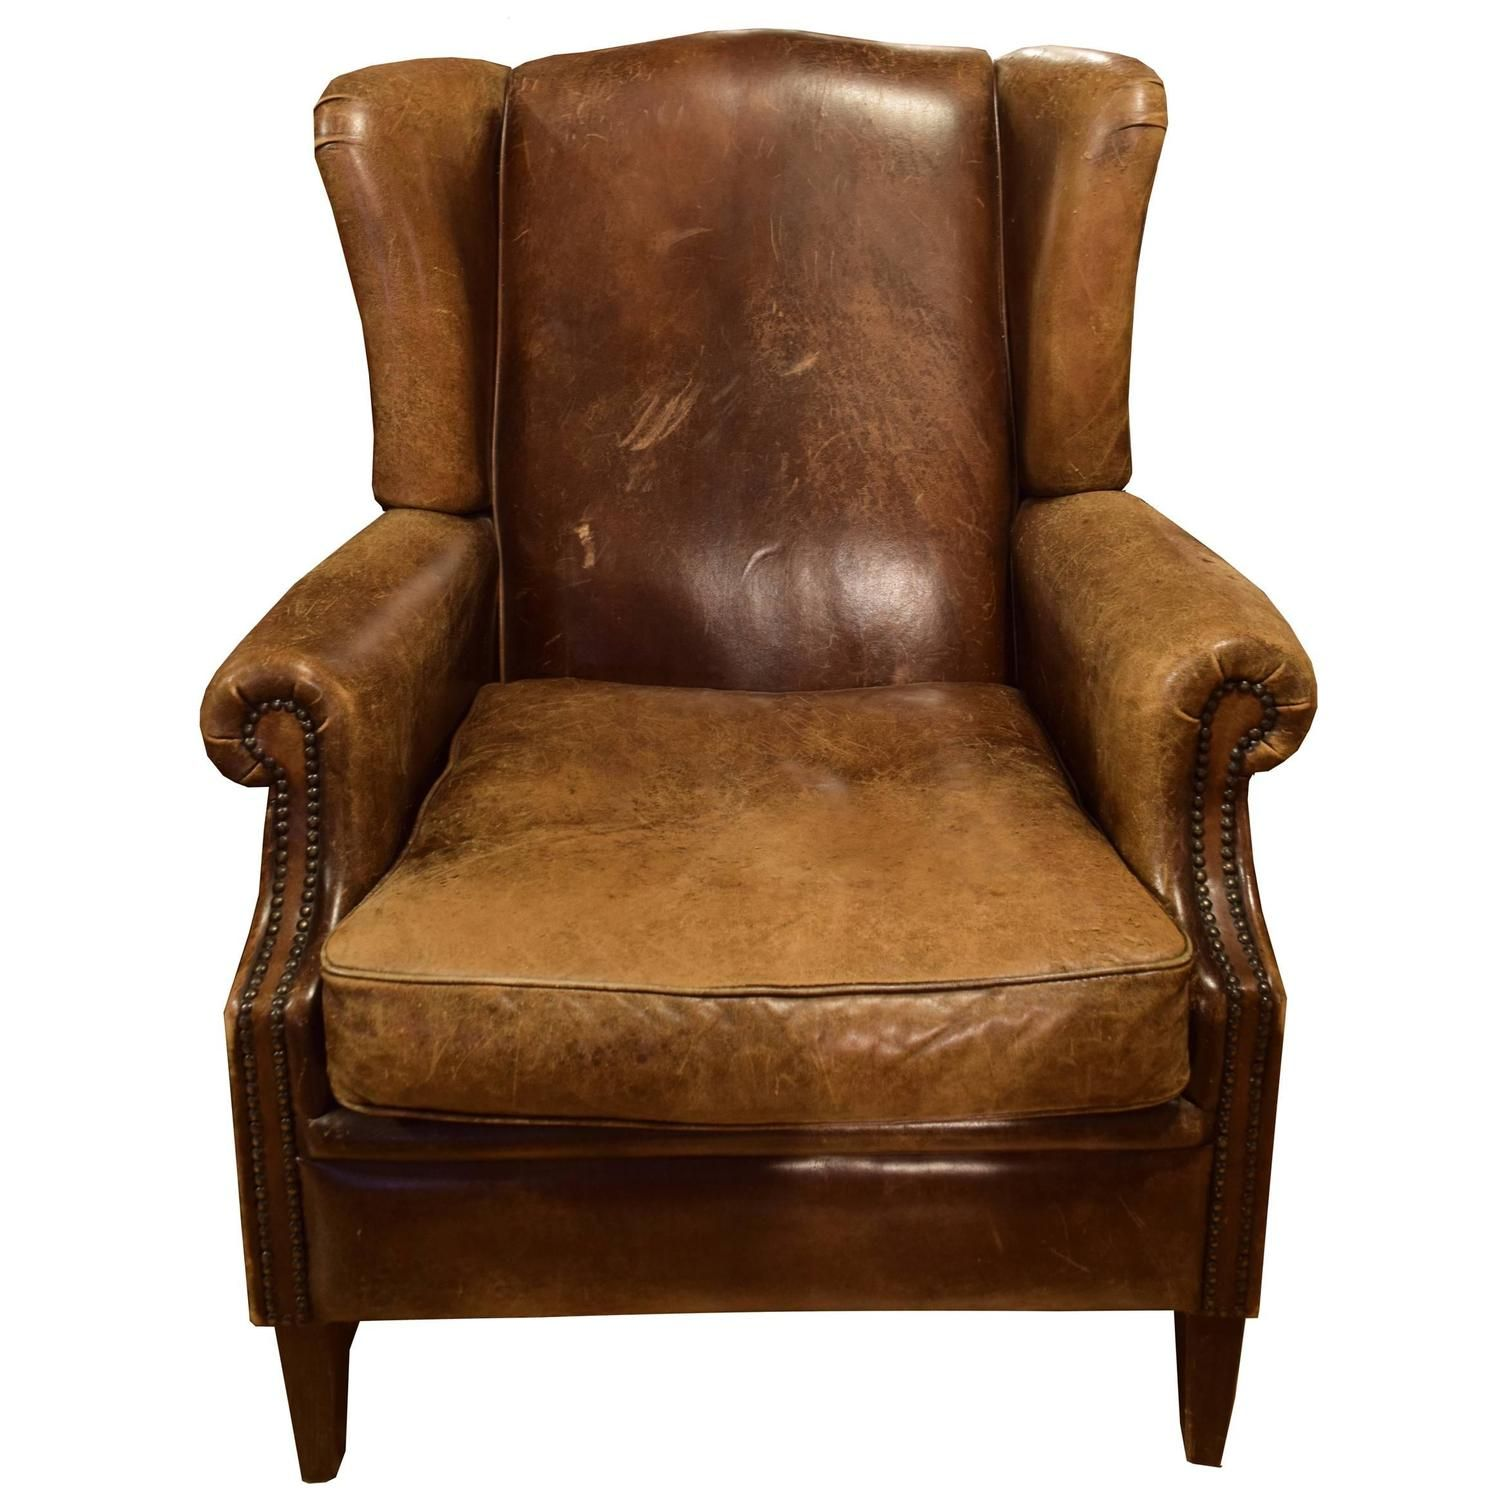 Leather Wingback Chair For Sale Stühle, Leder und Italien